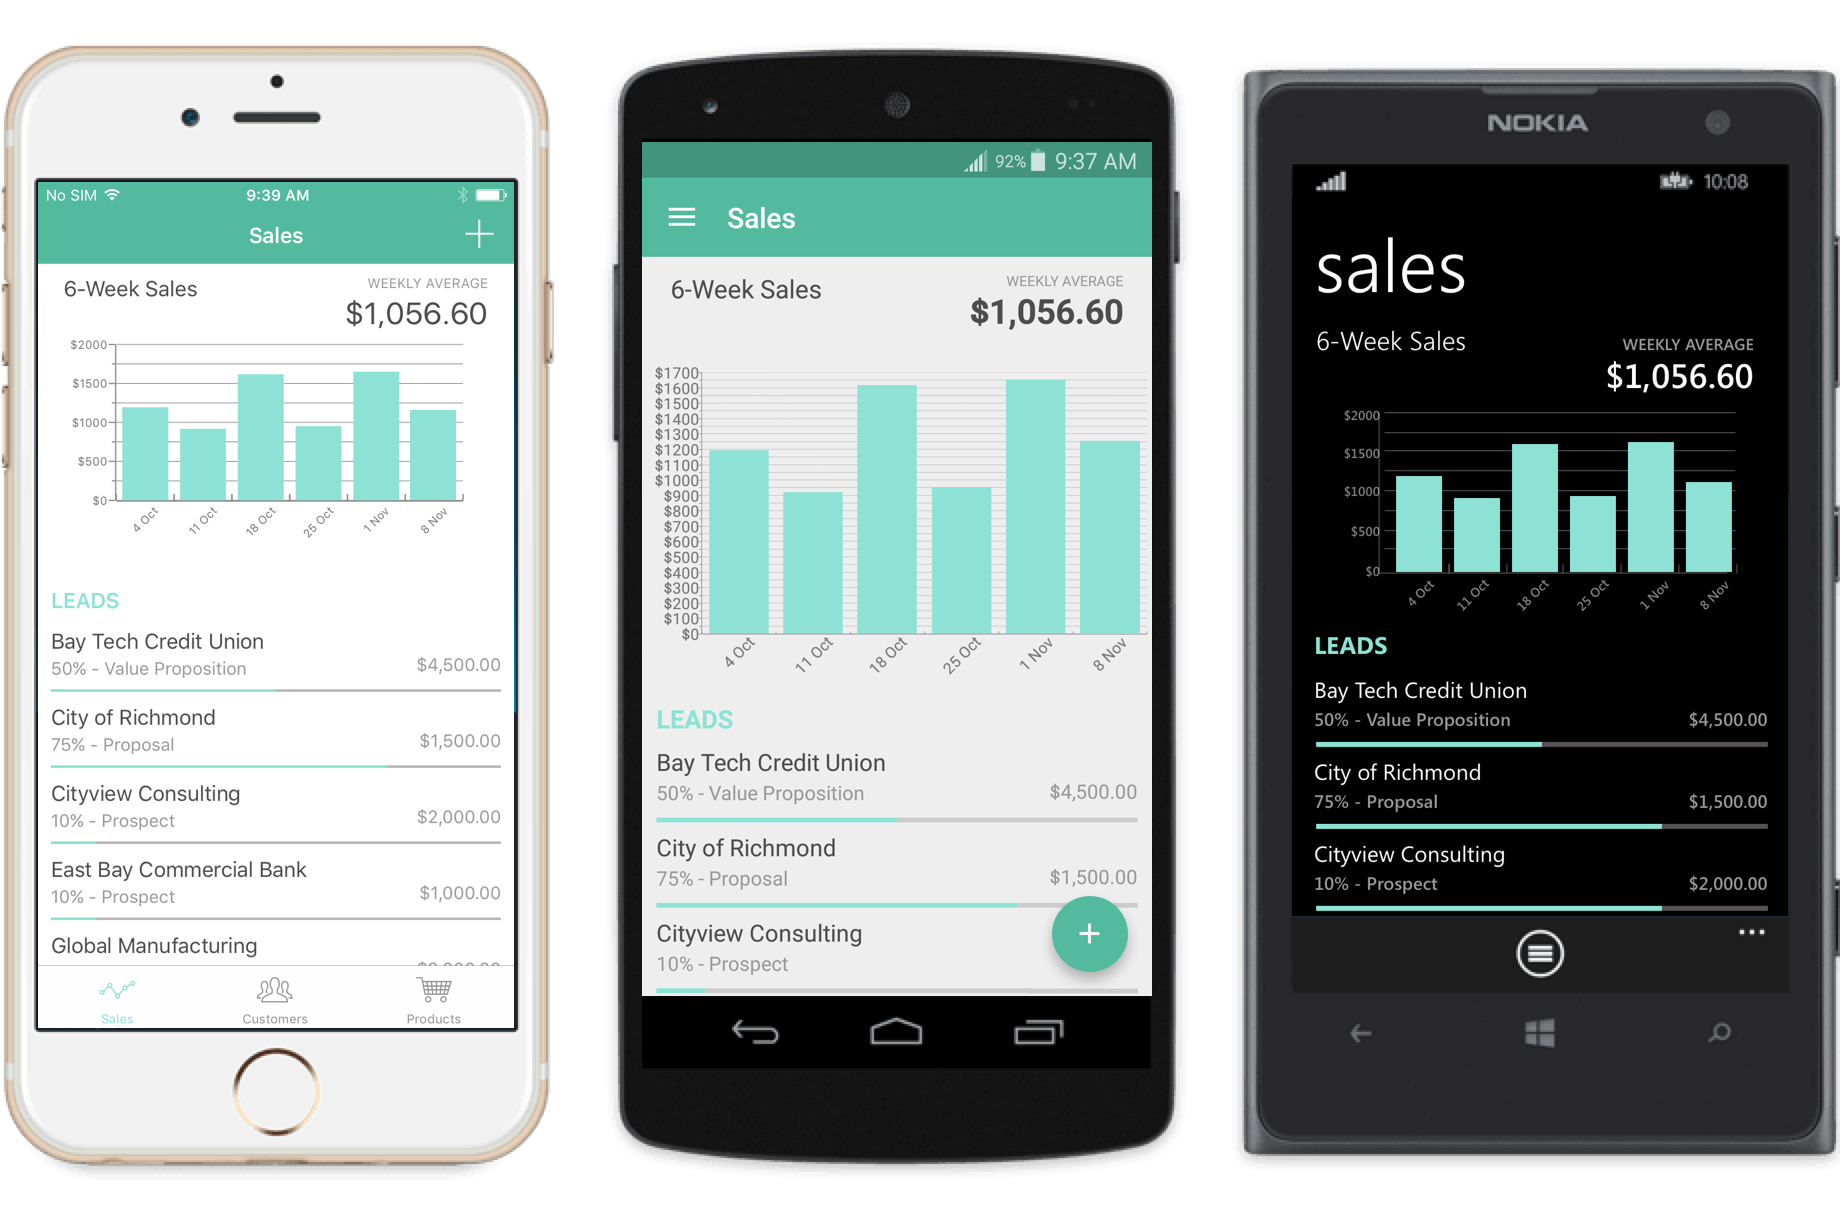 Native Xamarin.Forms app displayed on iOS, Android, and Windows Phone devices